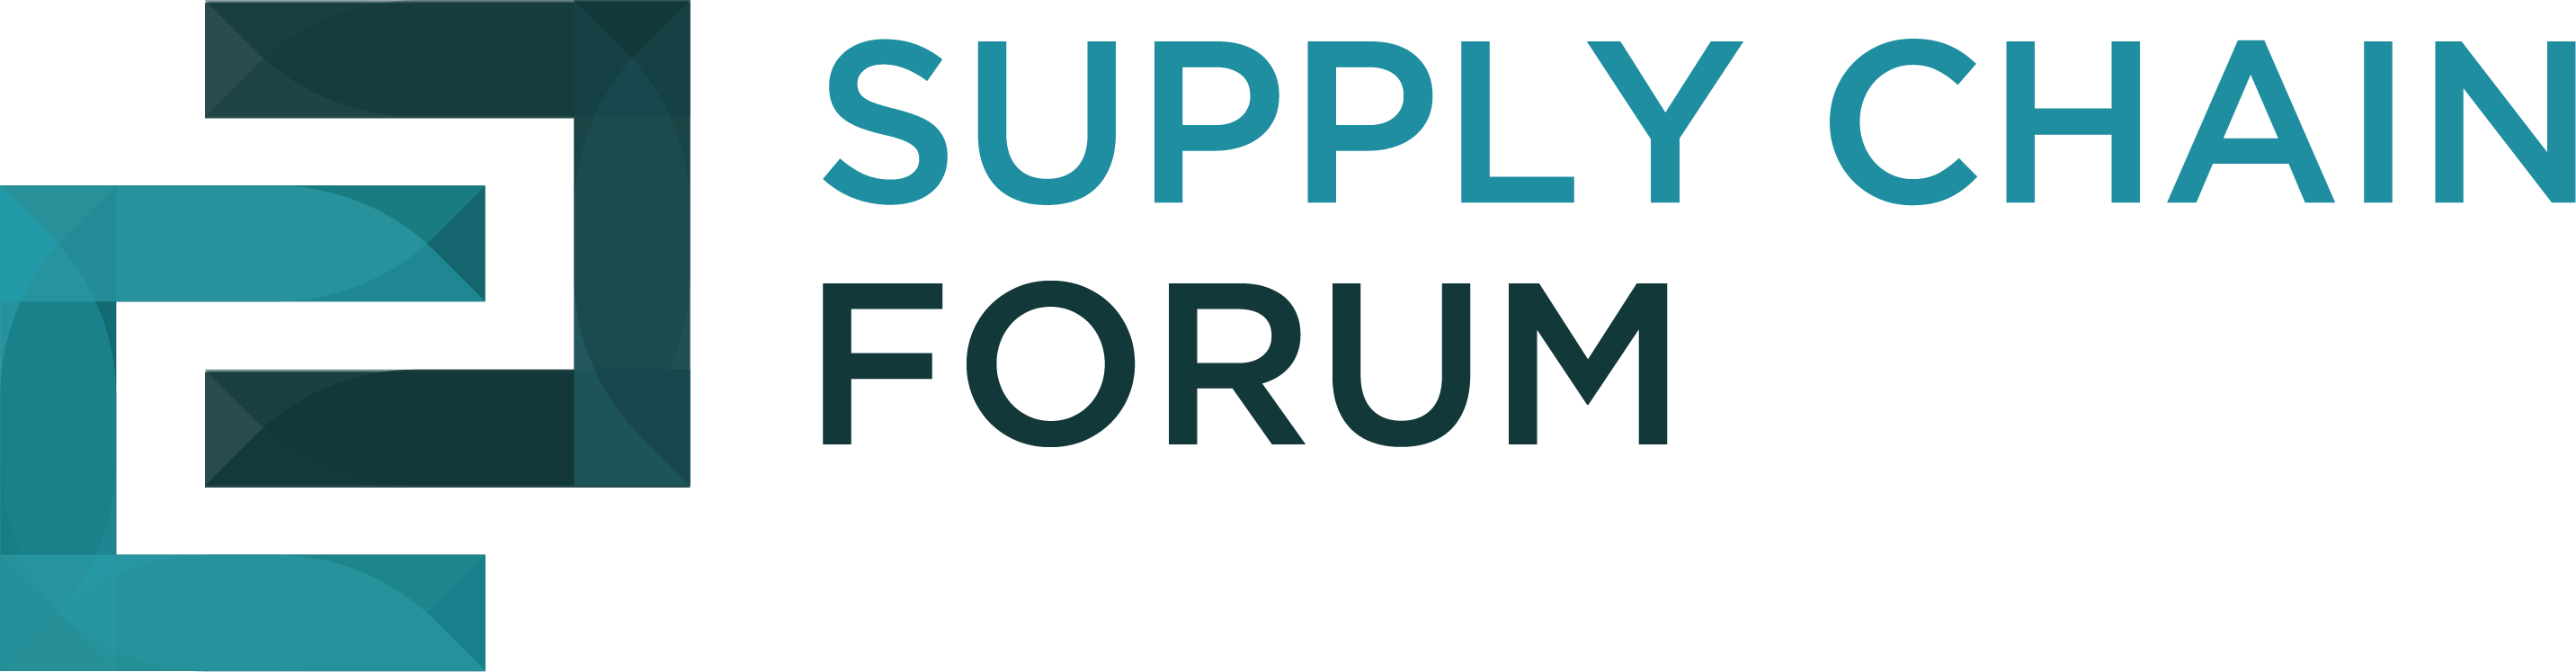 Supply Chain Forum, 18 & 19 September 2018, Sydney, Australia